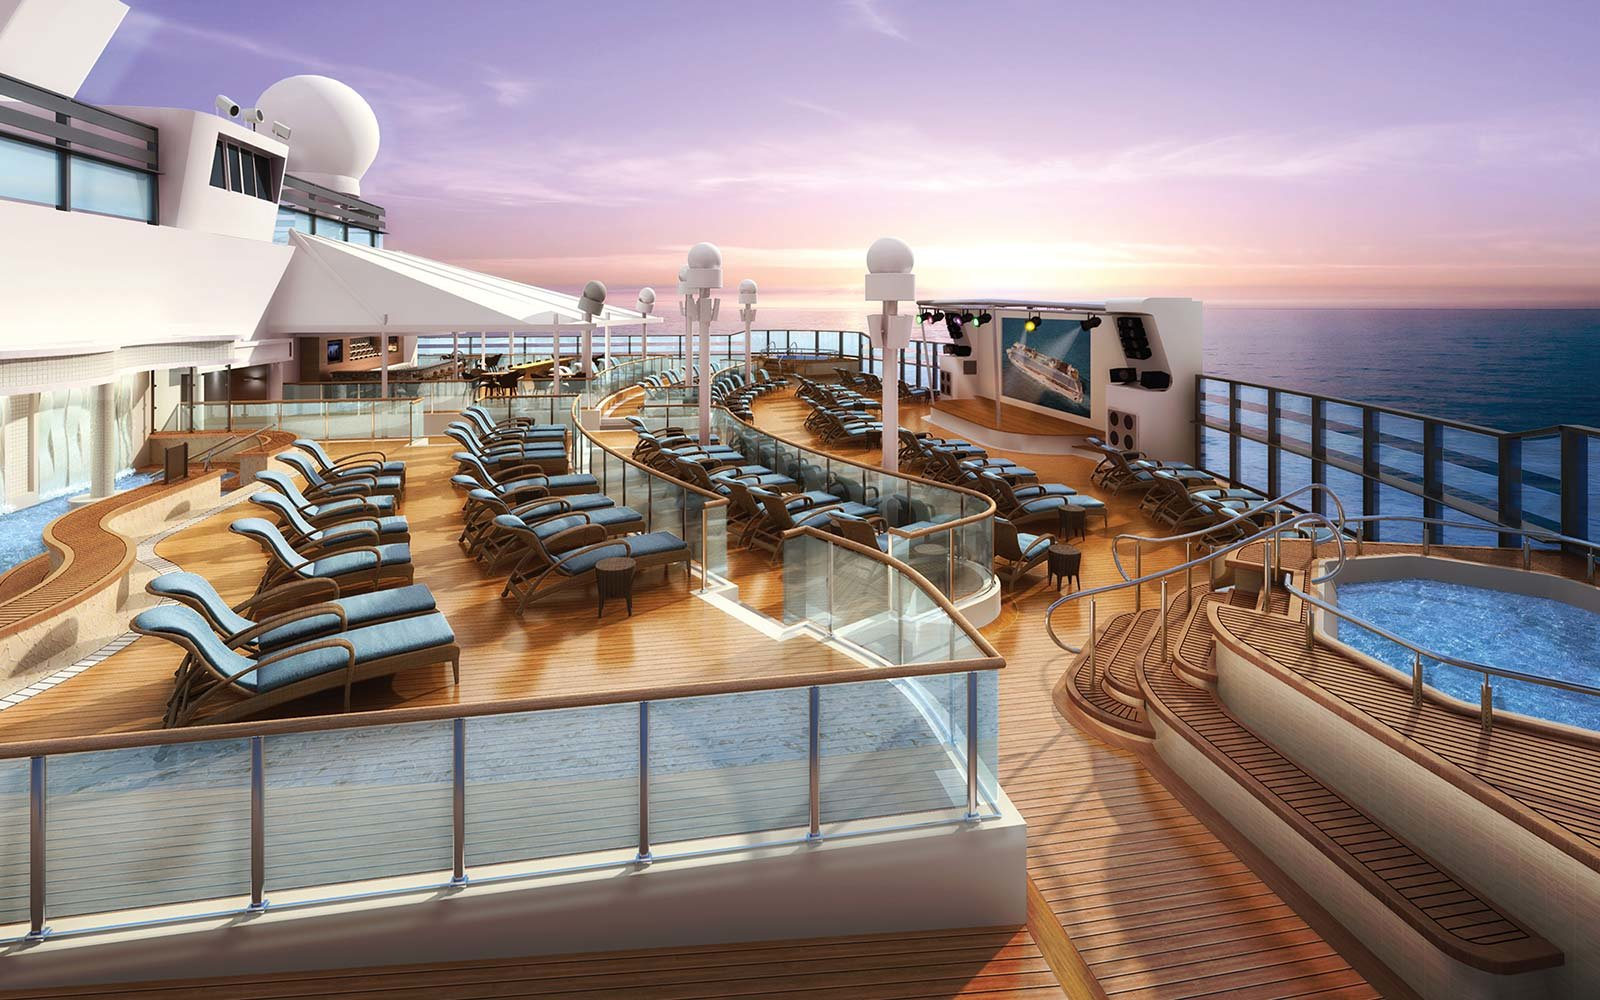 Norwegian Cruise Line Bliss Ship Spice Pool Deck Club Lounge